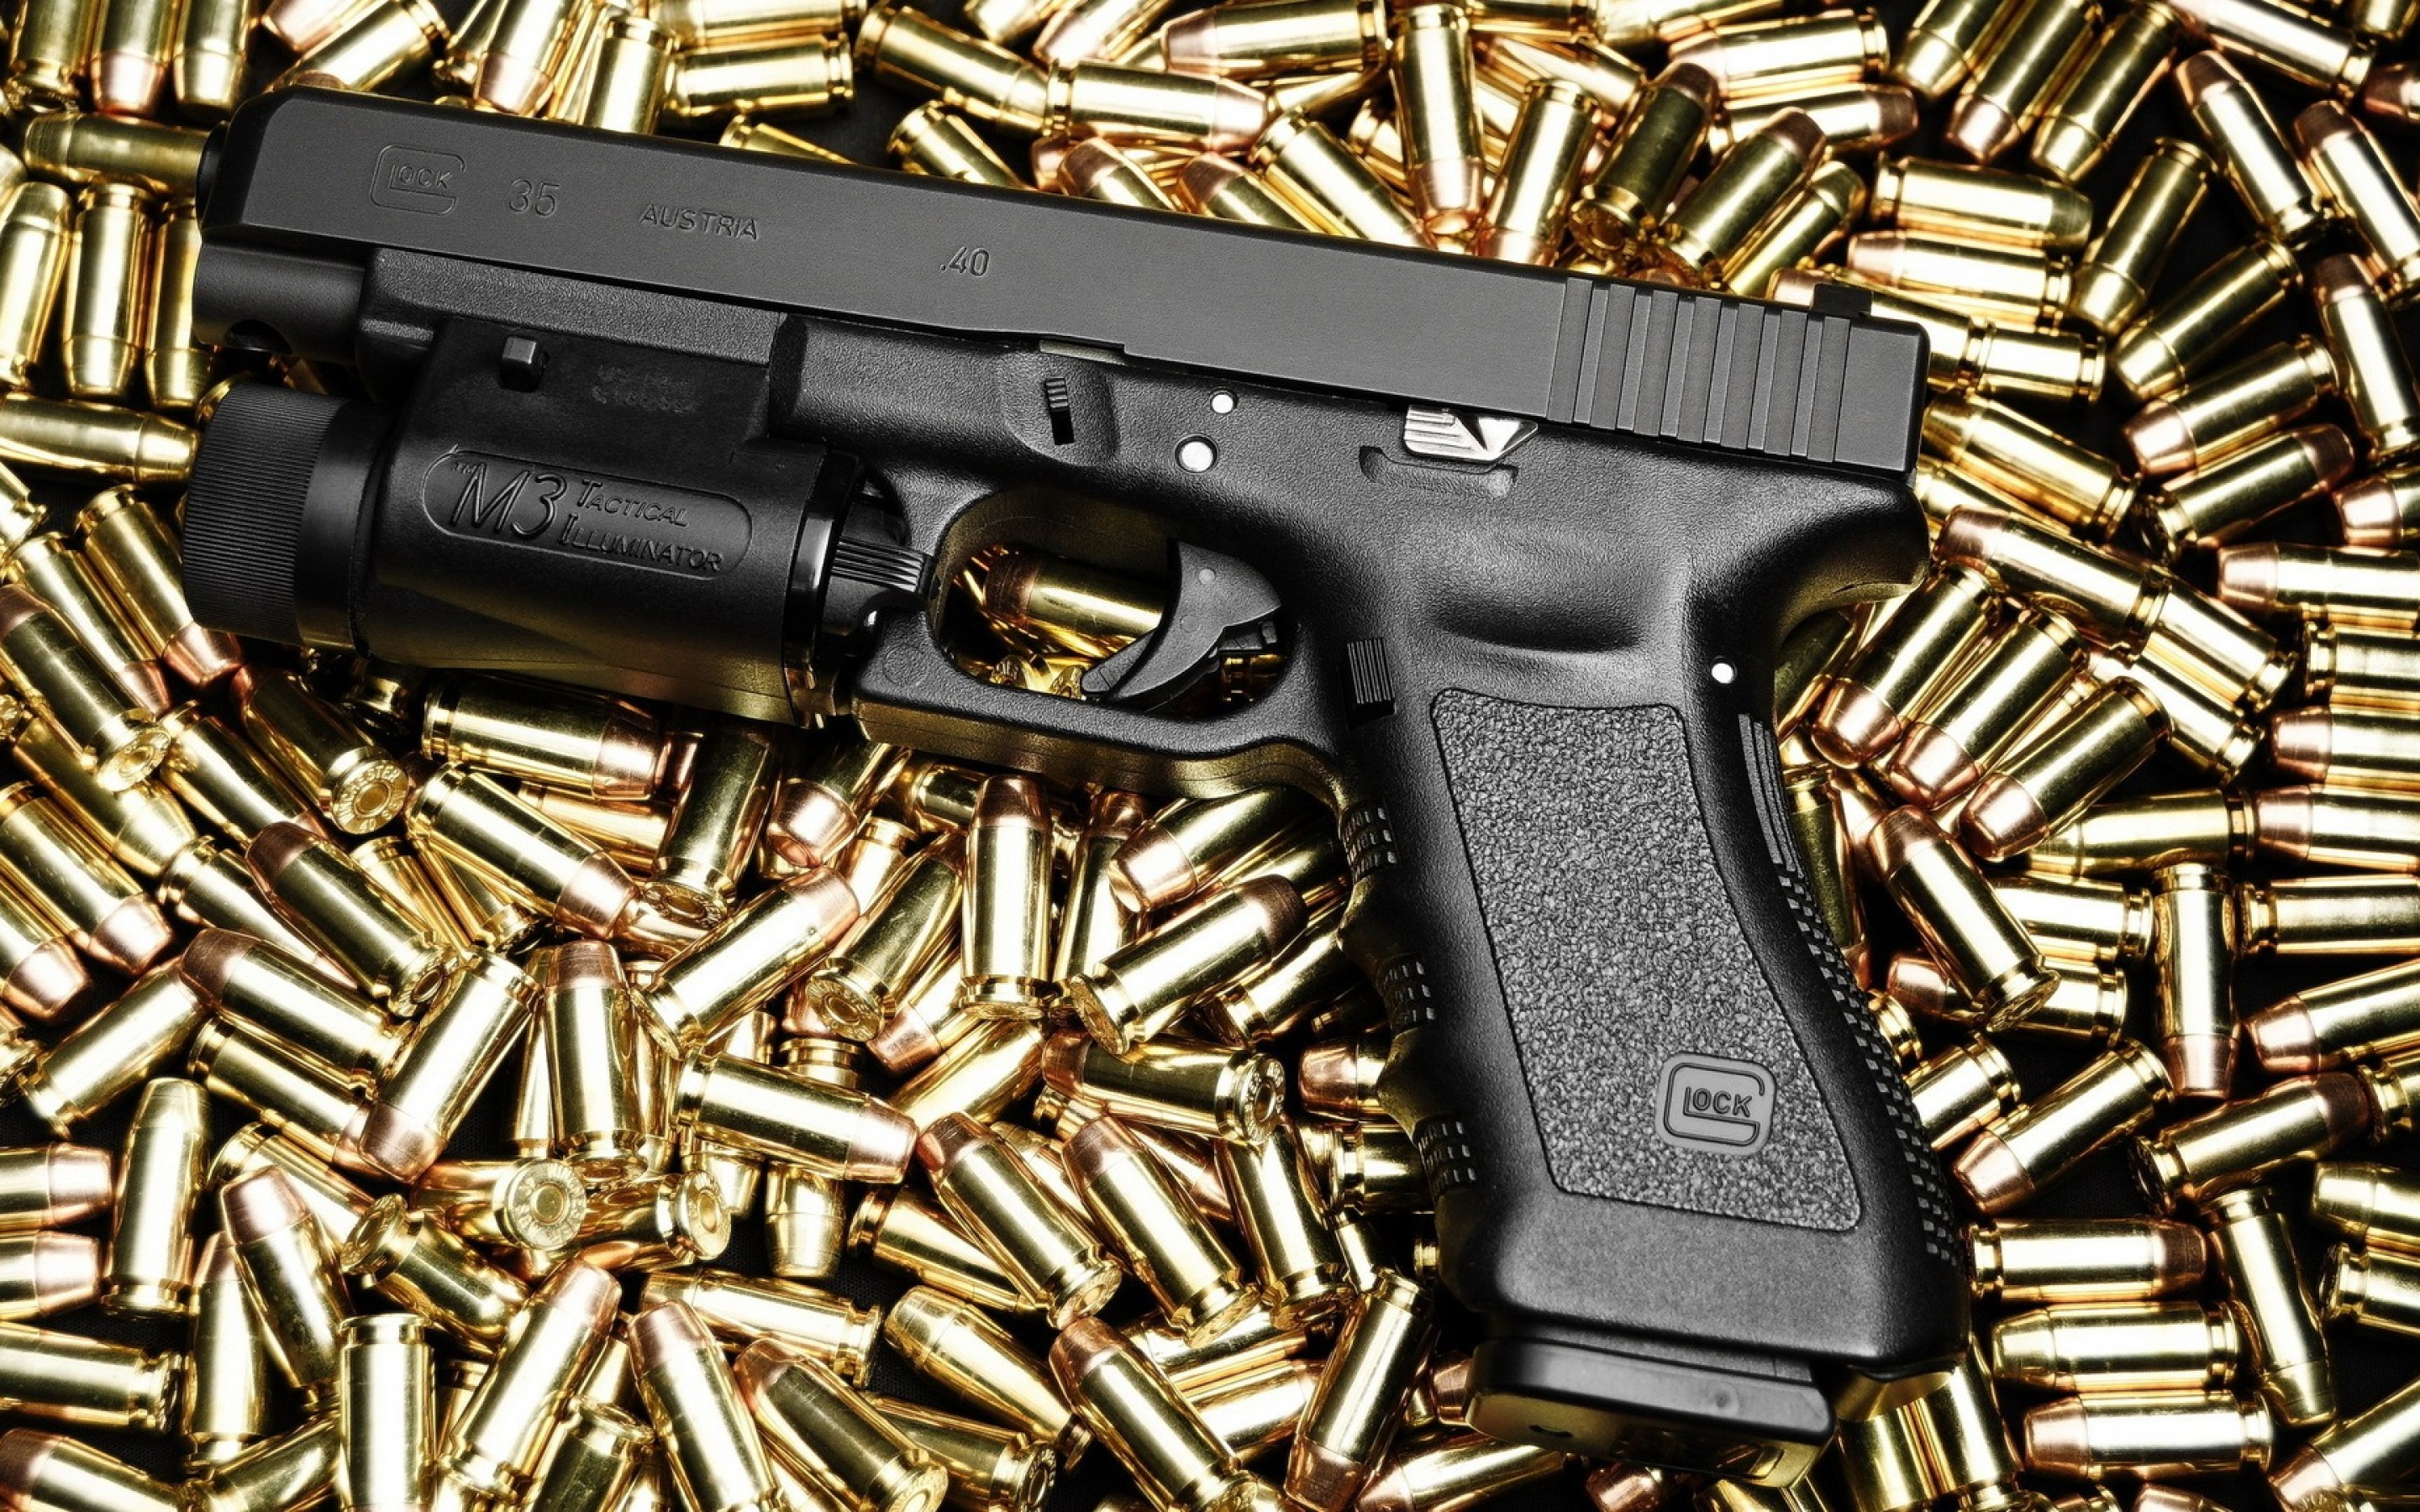 Res: 2880x1800, Glock Pistol Wallpapers 2 - 2880 X 1800